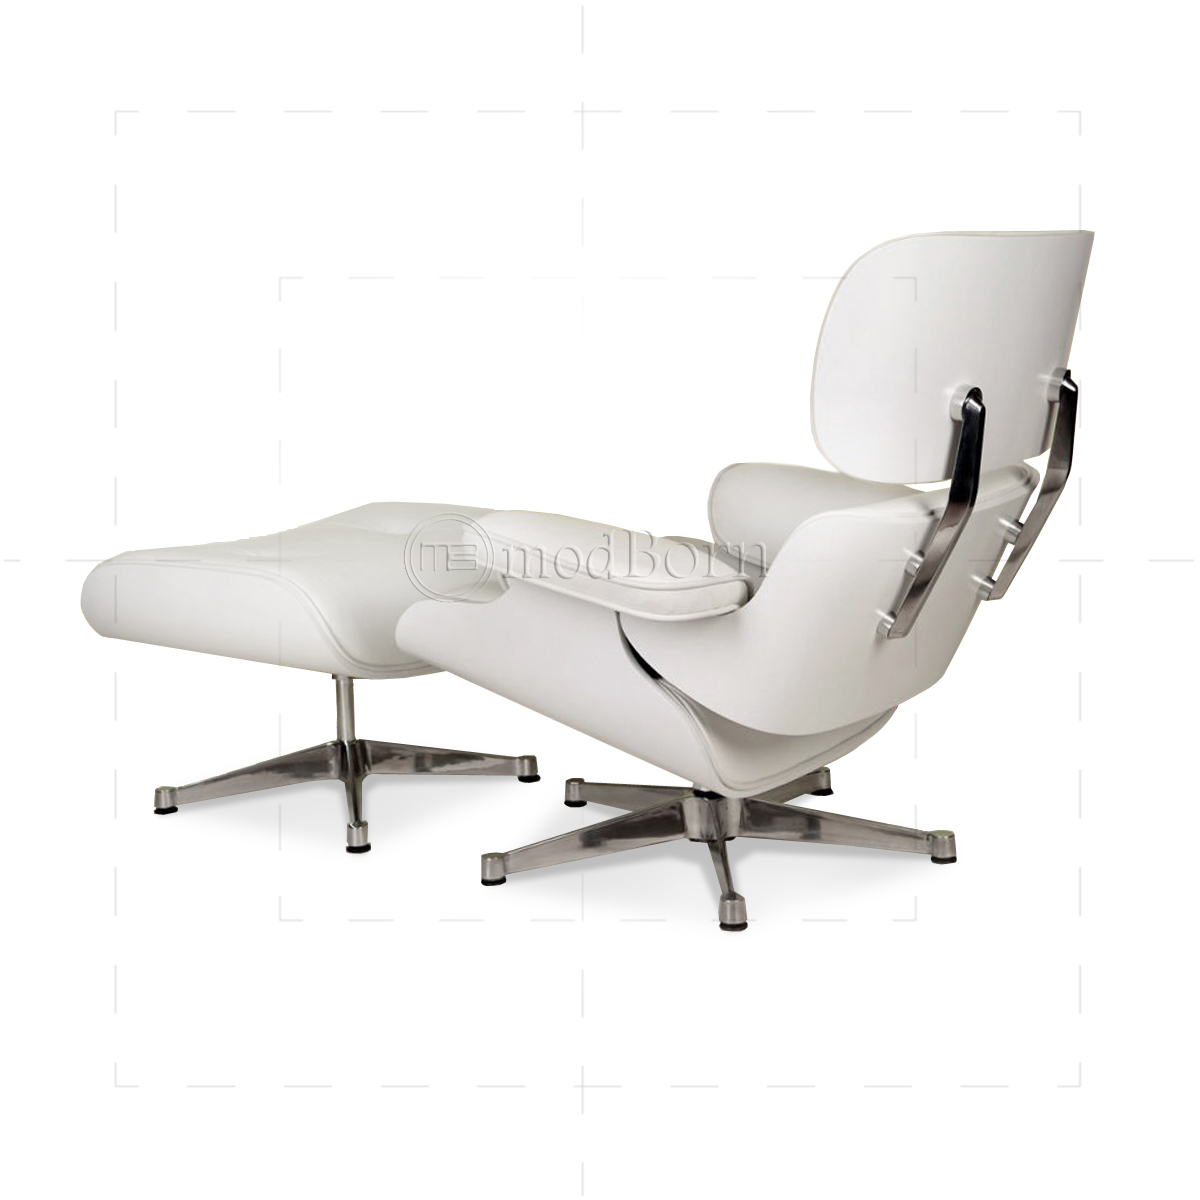 Eames Style Lounge Chair and Ottoman White Leather White Wood